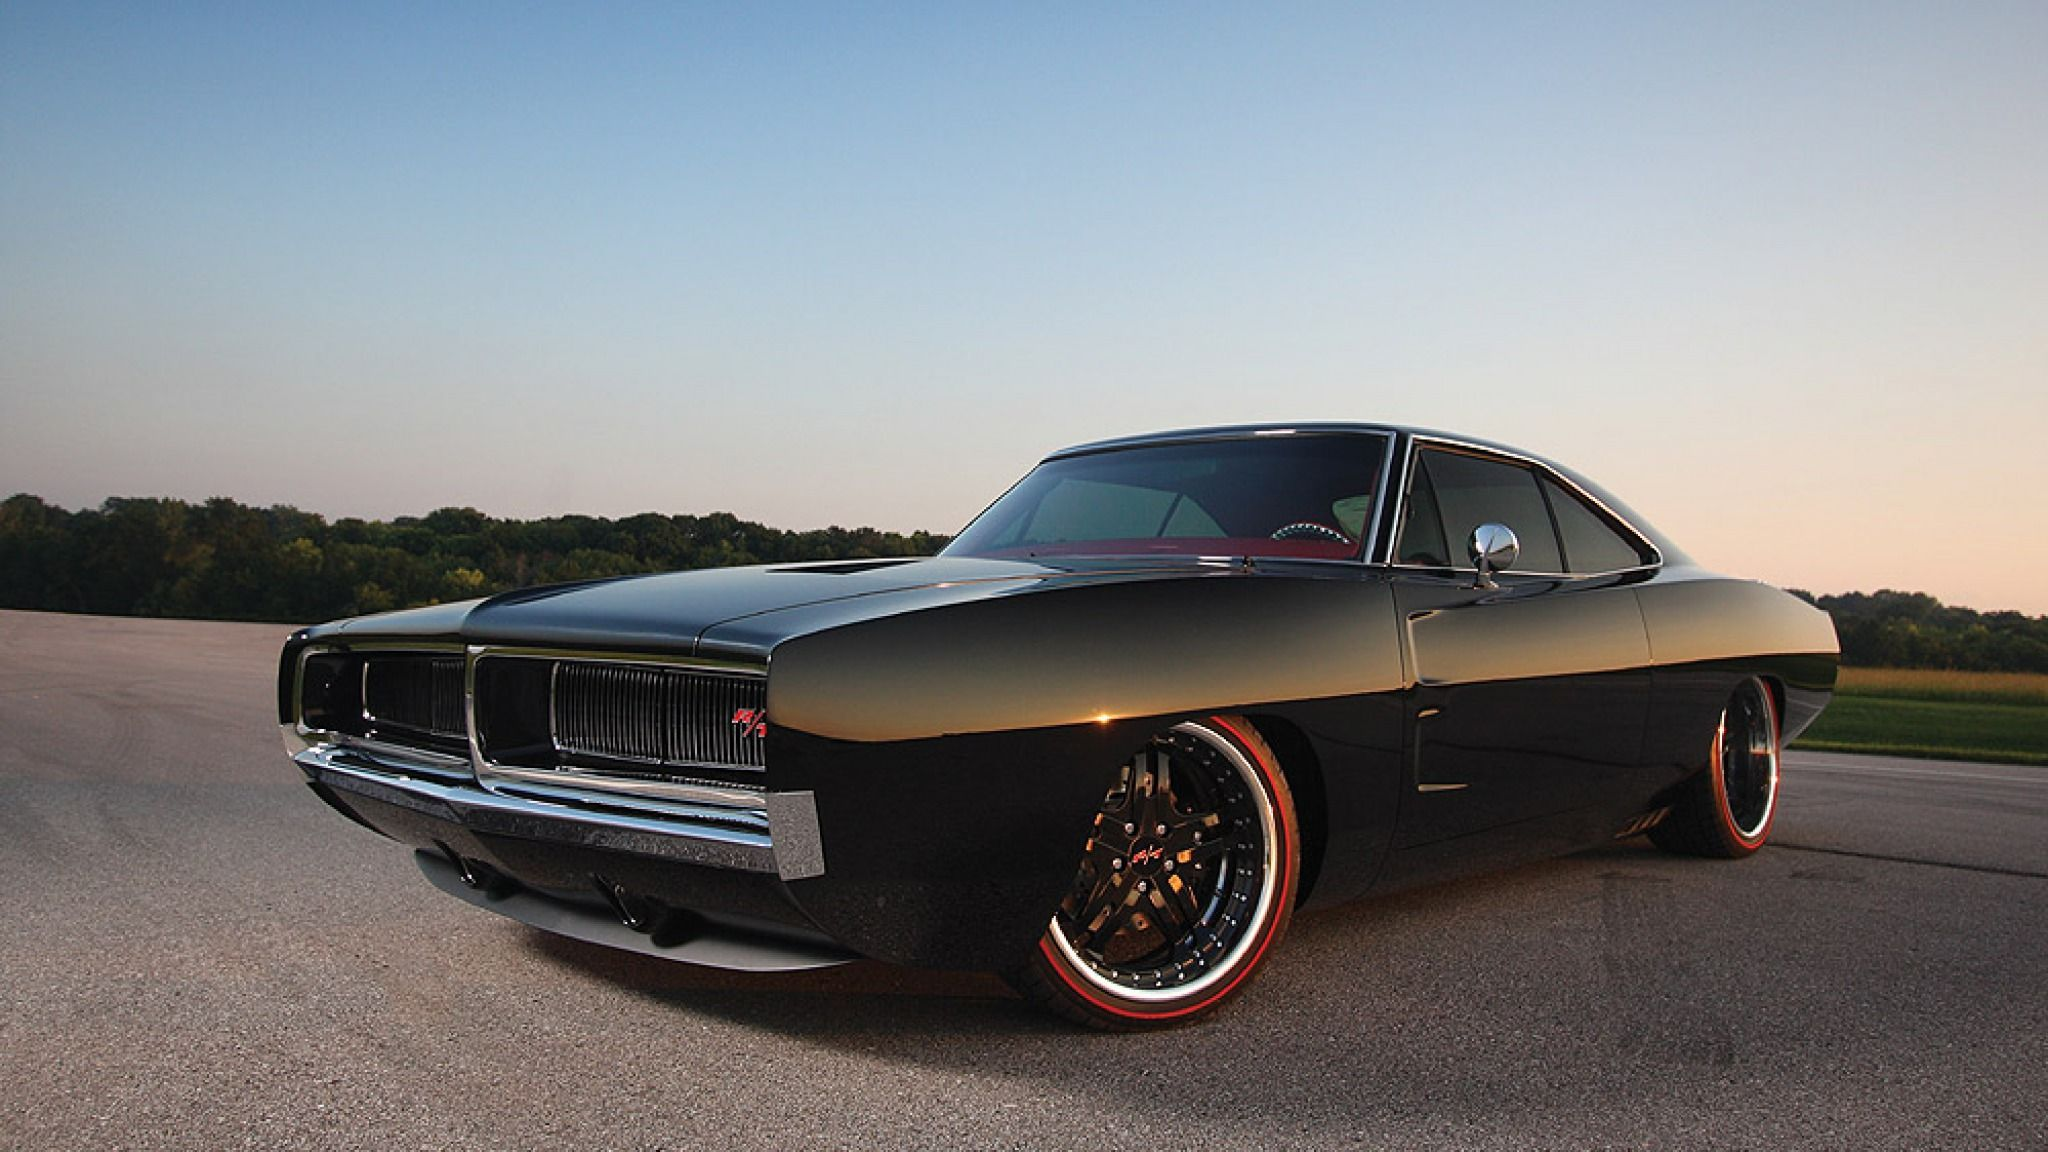 Black Dodge Charger Wallpaper | HD Wallpapers | Pinterest | Dodge Charger  And Wallpaper